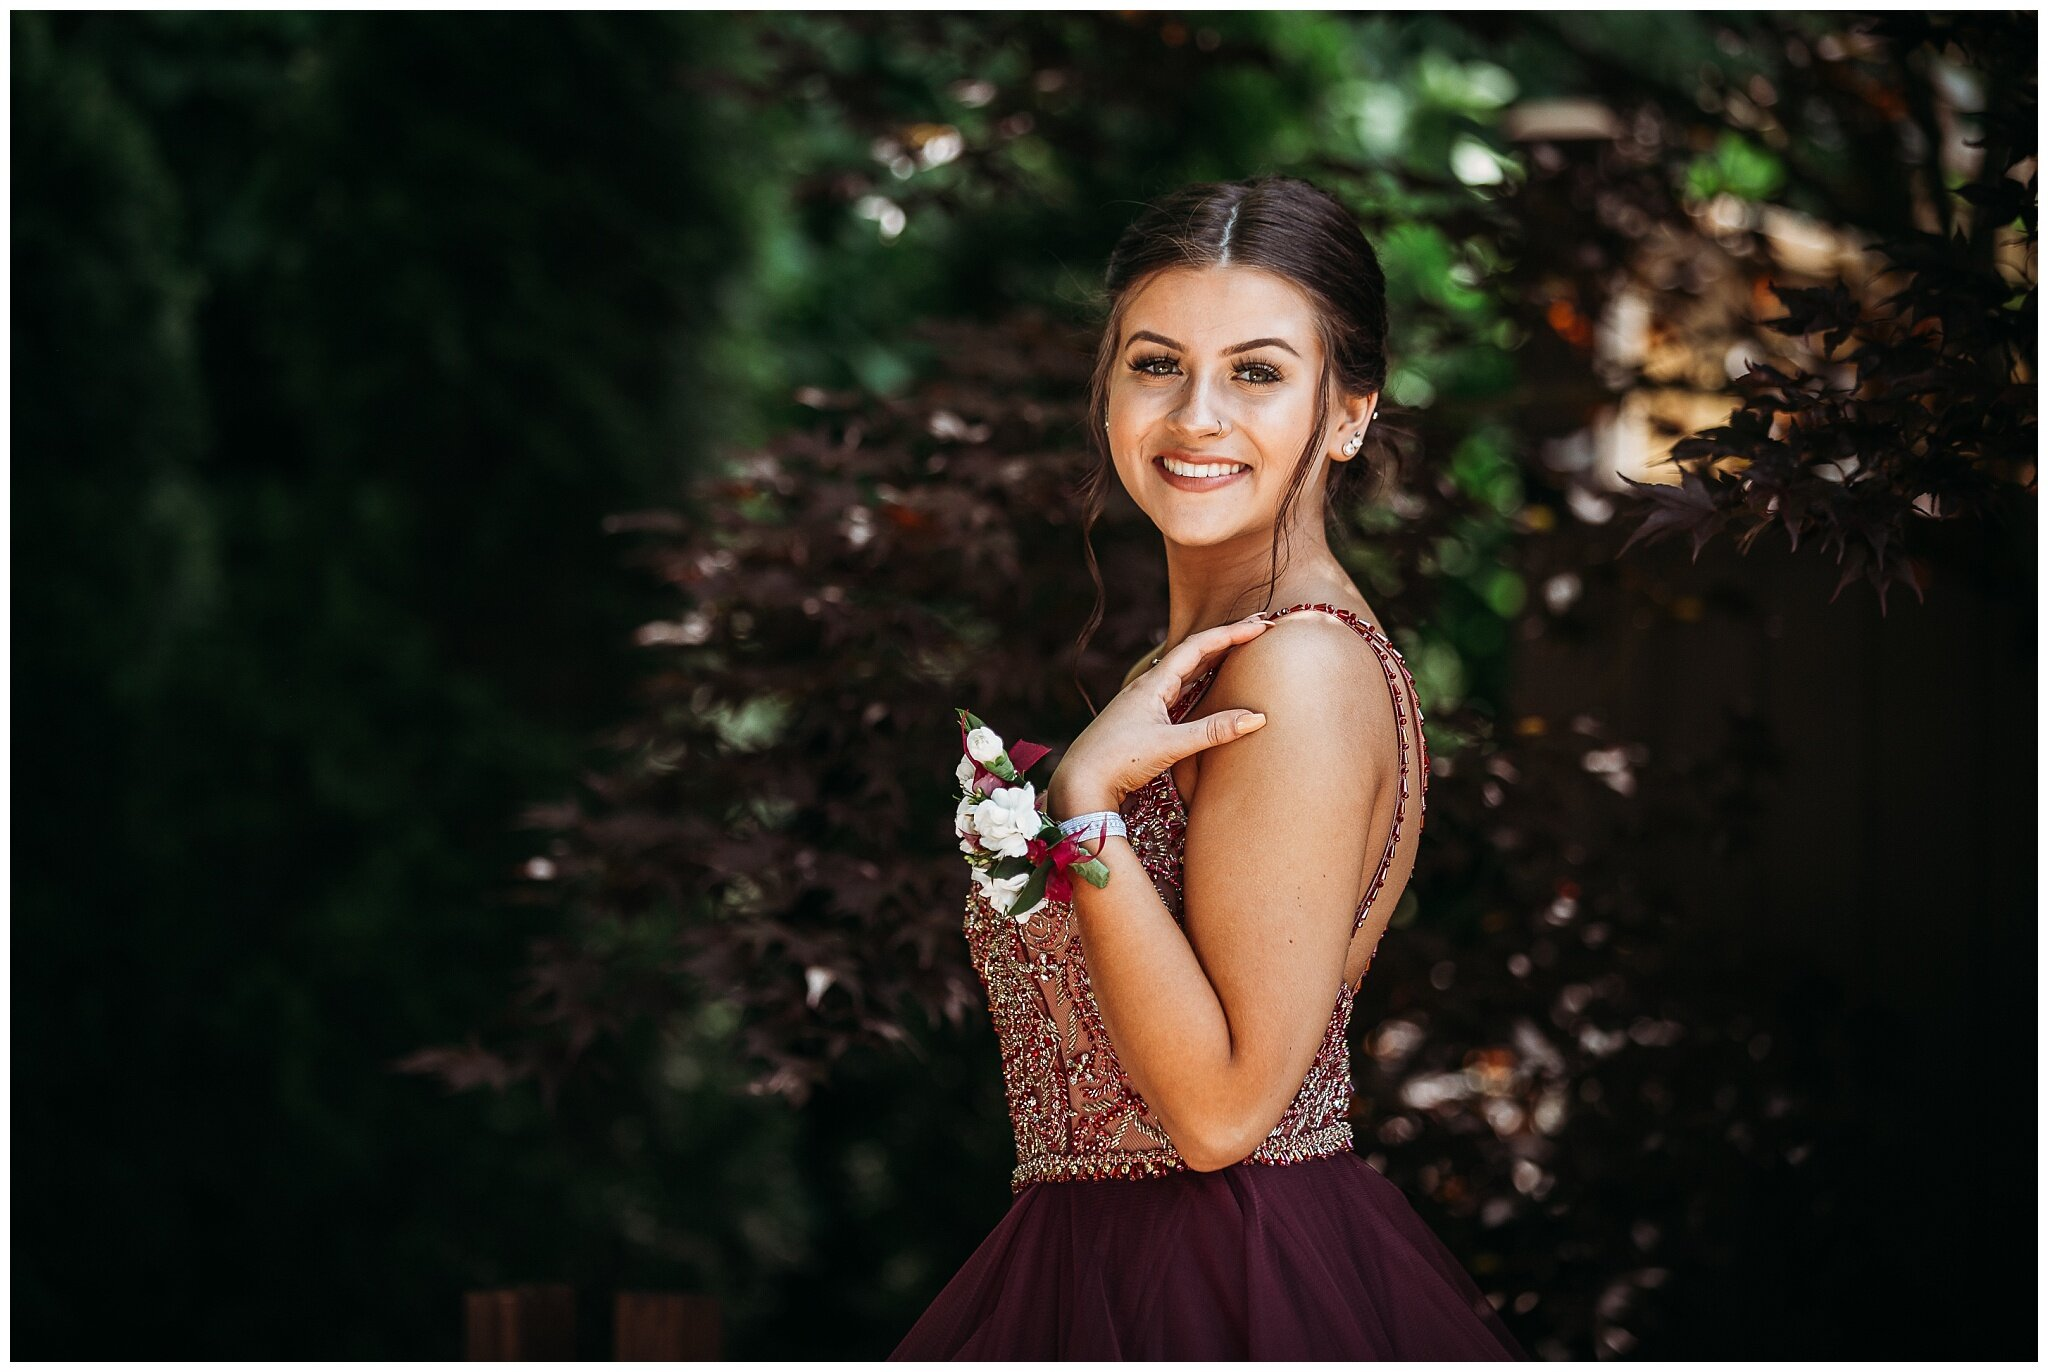 Abbotsford Highschool Prom Graduation Photographer 2019 Abbotsford fun bright_0012.jpg